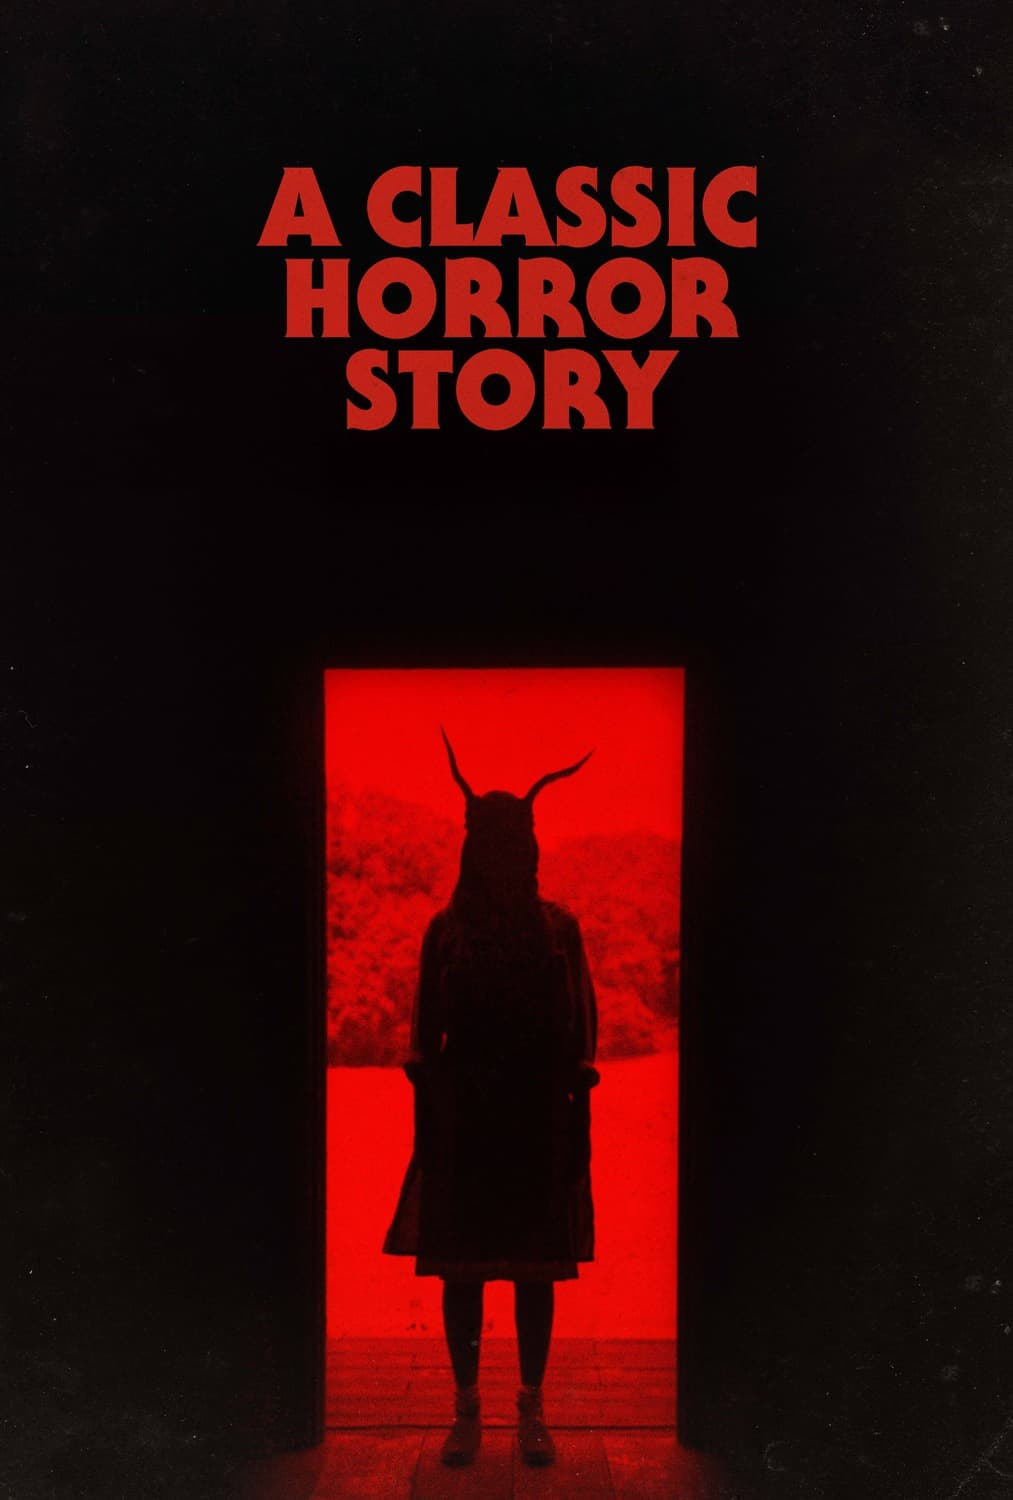 A Classic Horror Story 2021 FULLHD Streaming